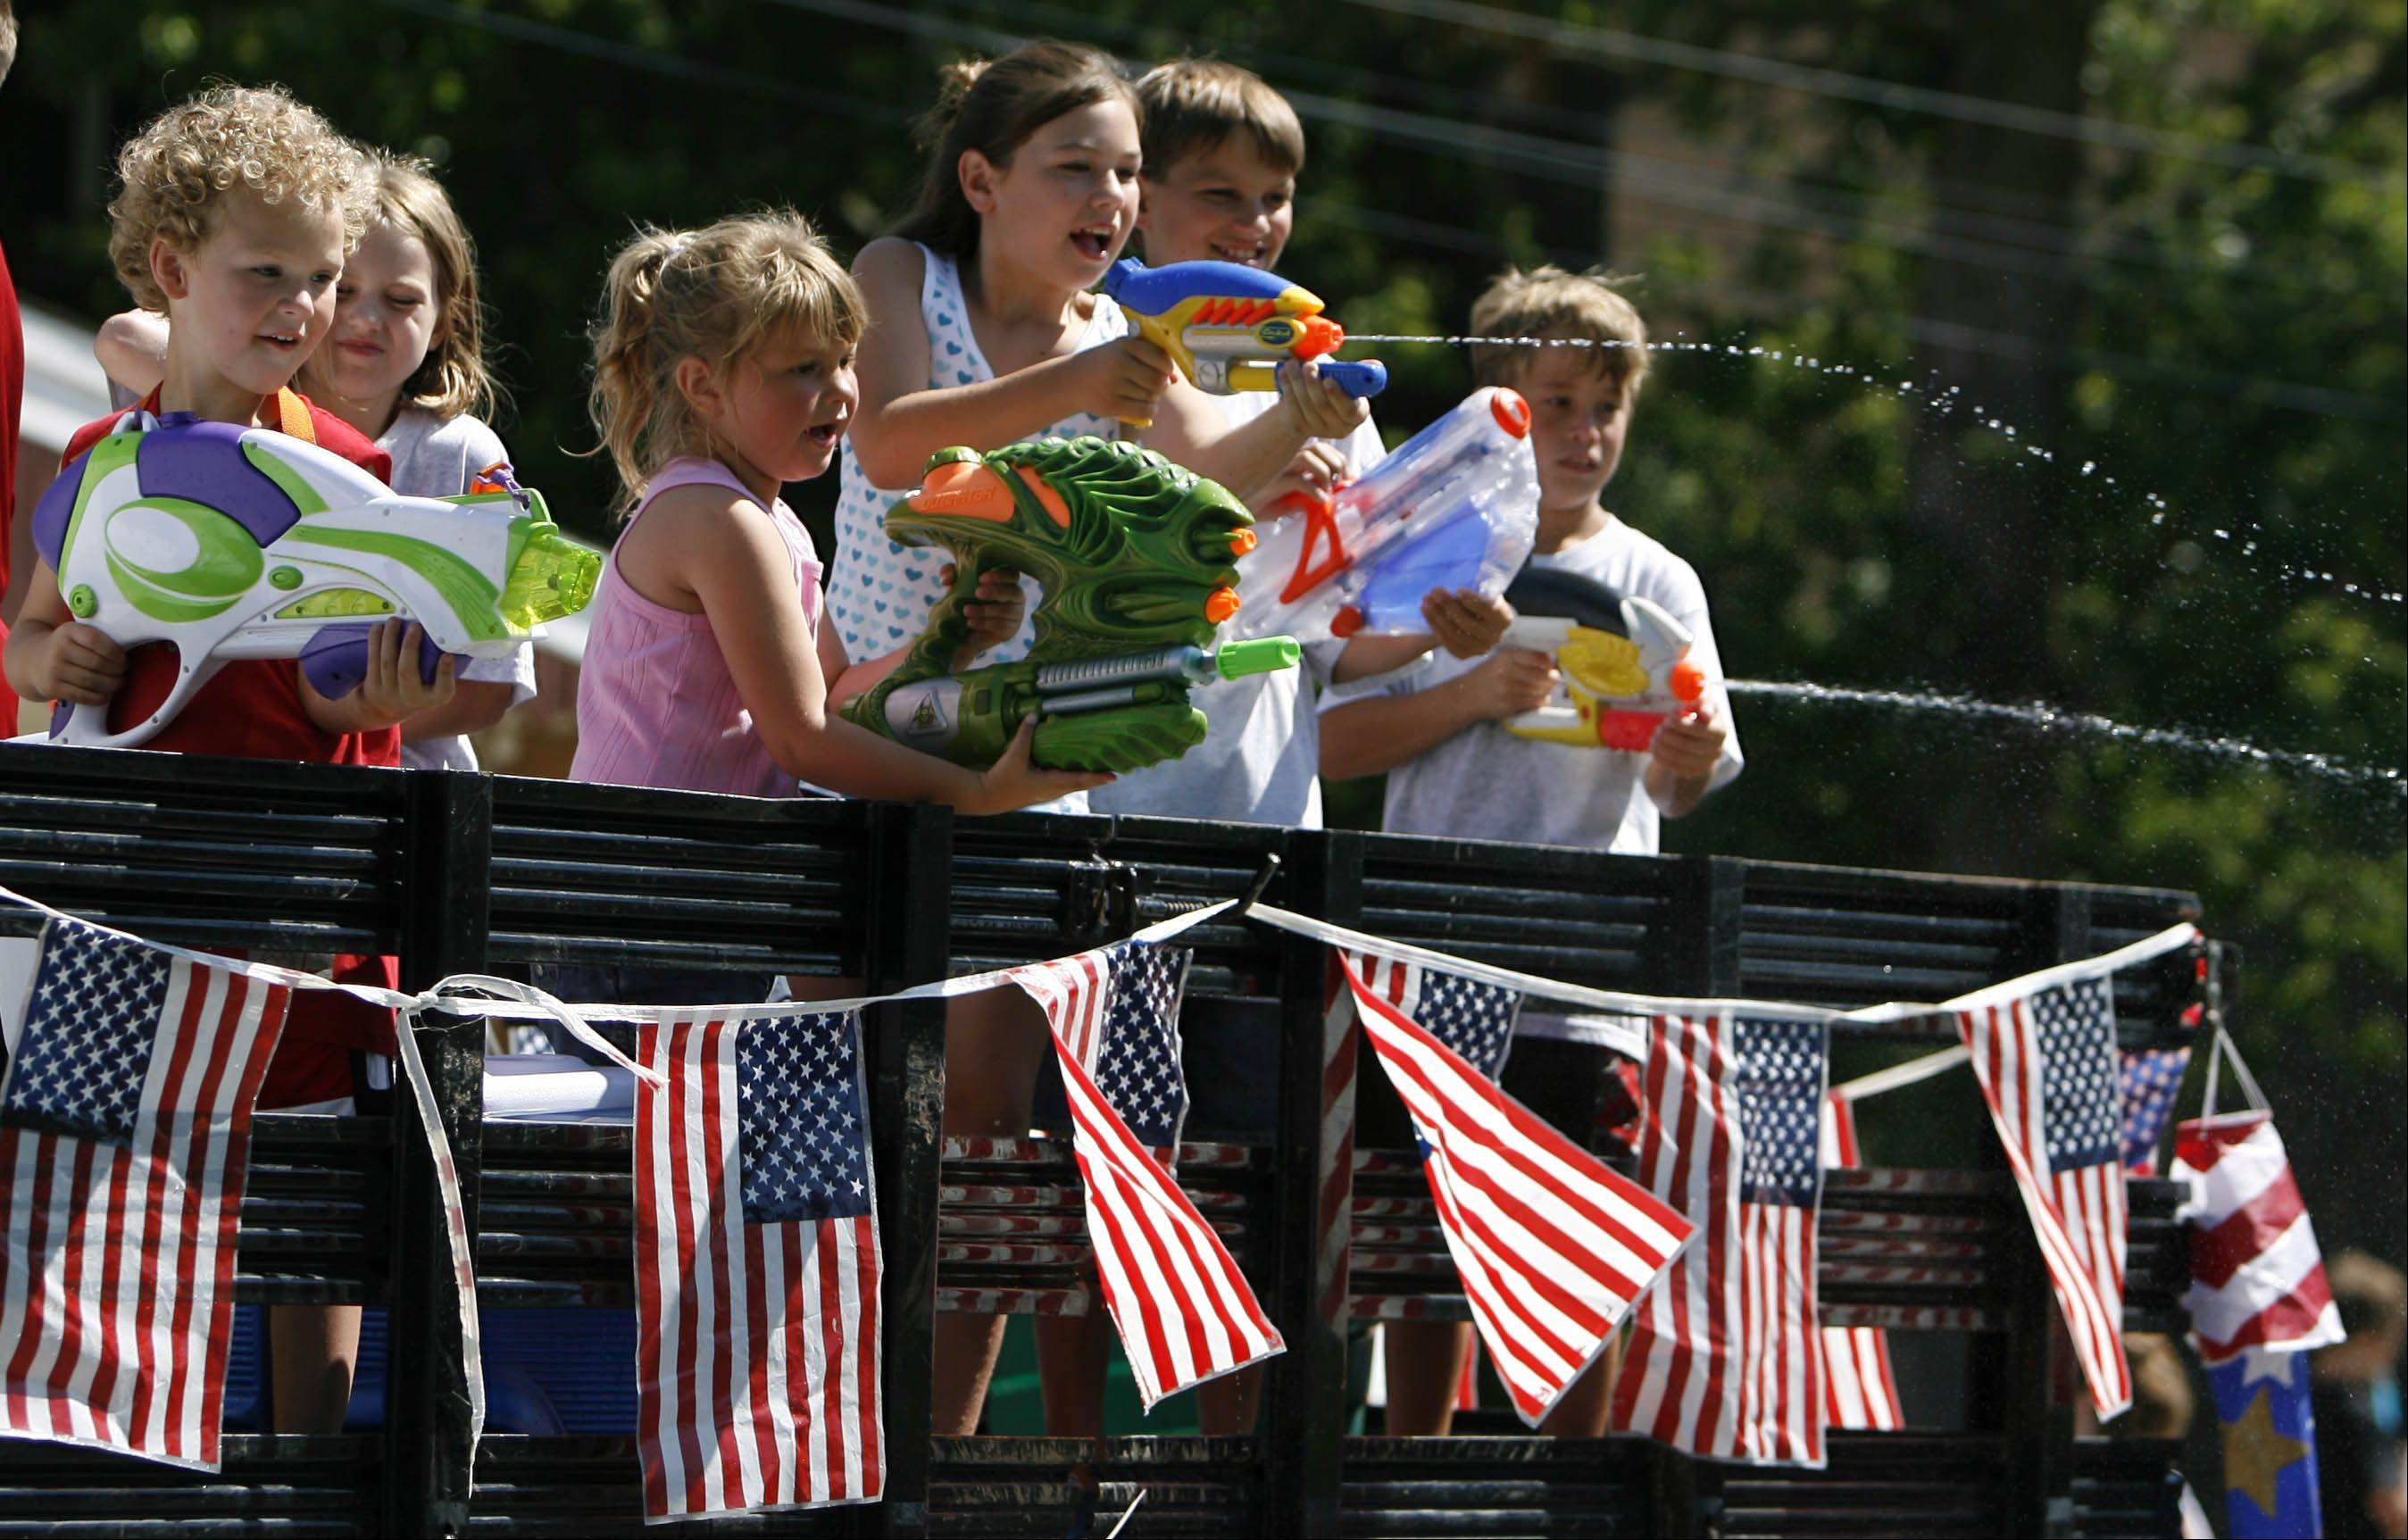 Children on the float from Superior Paving of Fox Lake cool off parade watchers.